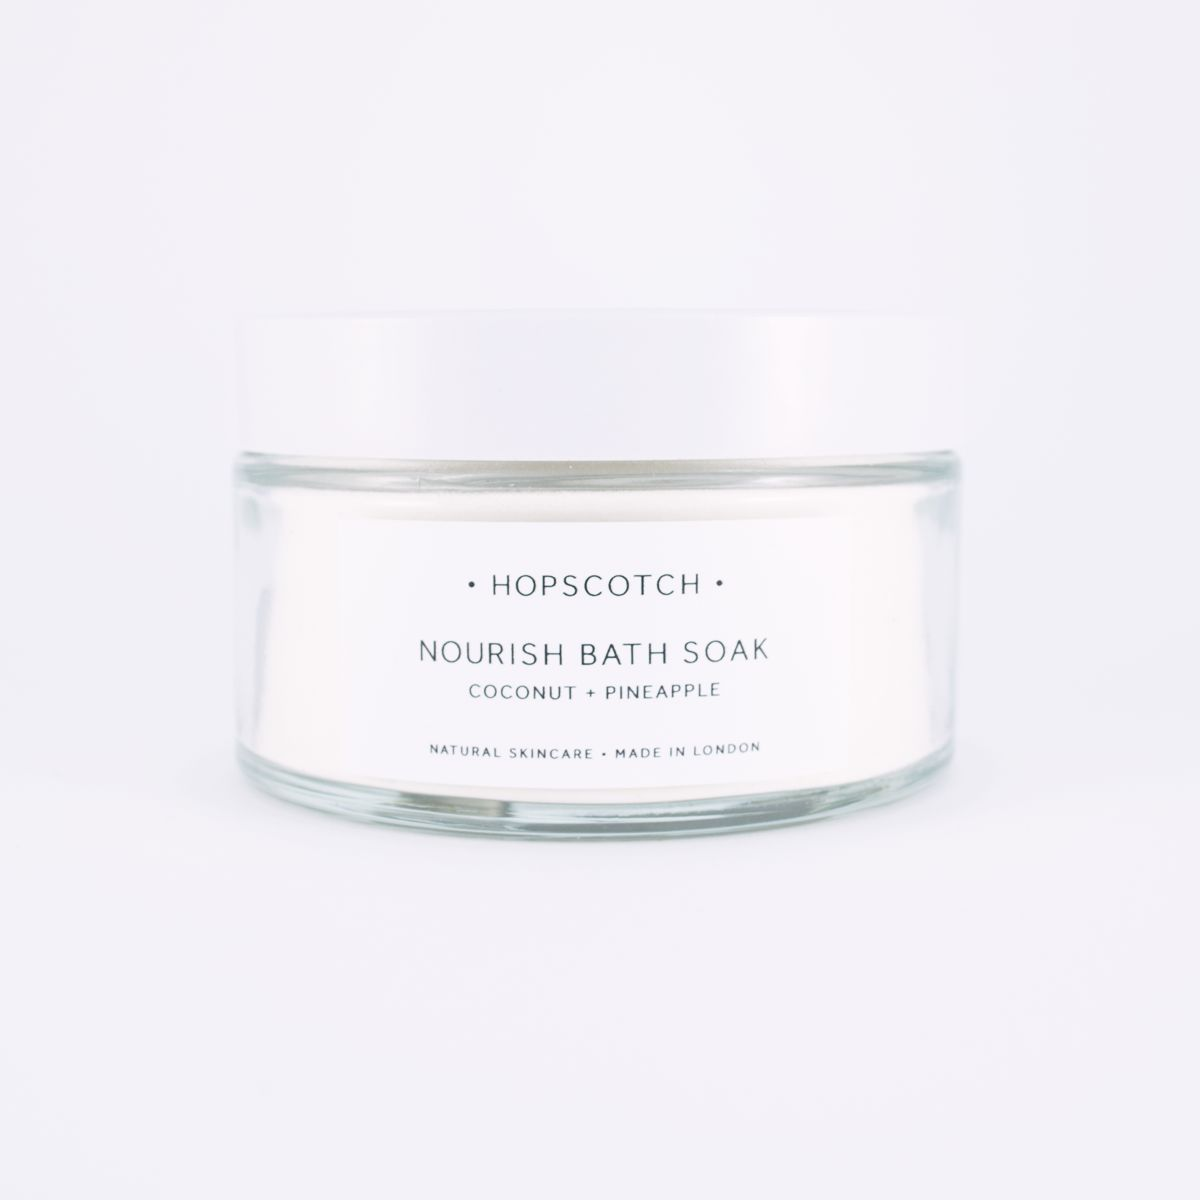 hopscotch nourish bath soak